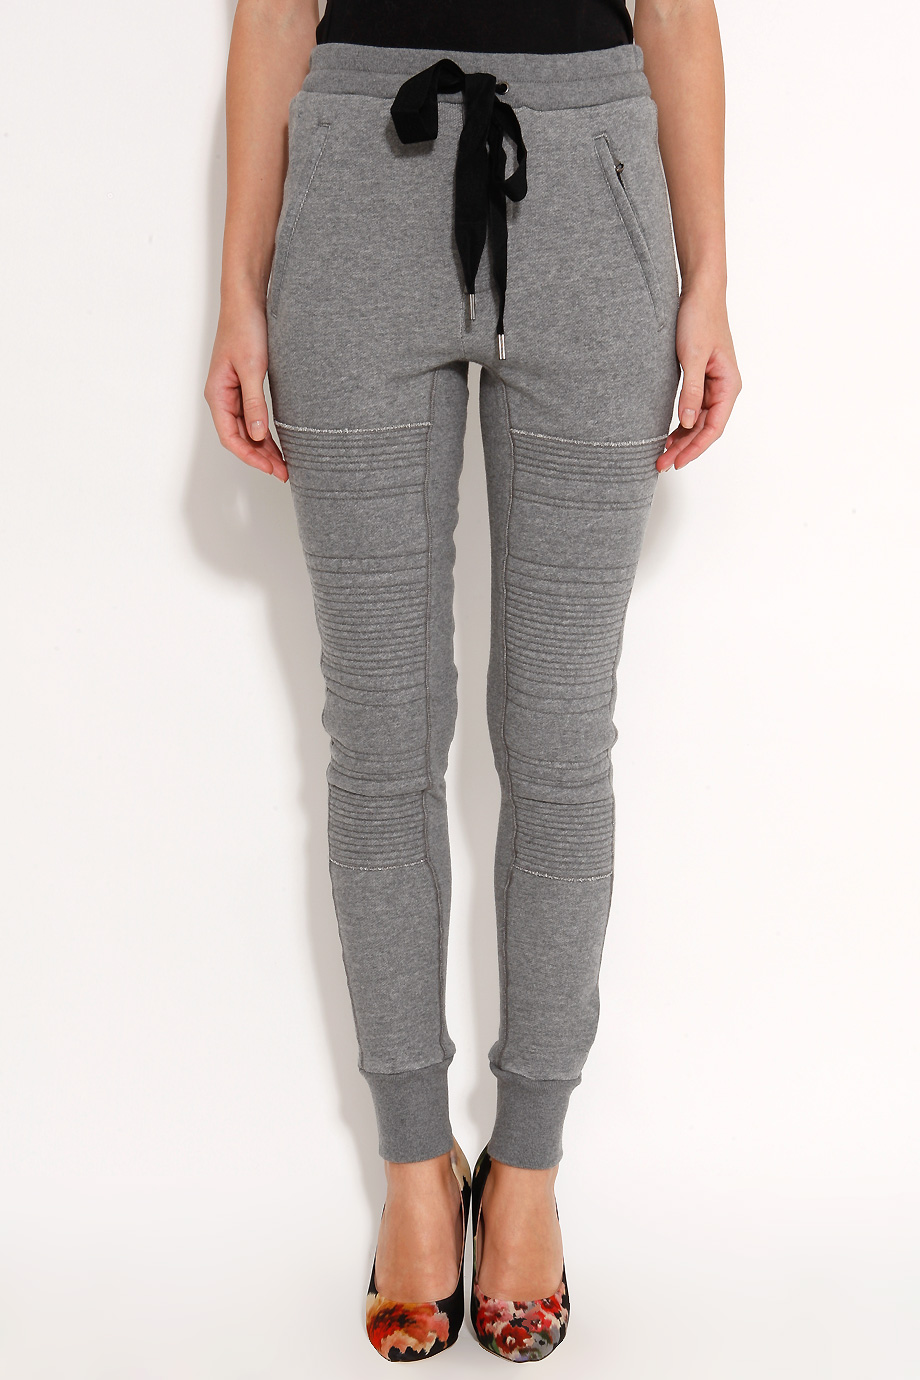 3.1 Phillip Lim Stitched Panel Sweatpants in Grey (Gray) - Lyst